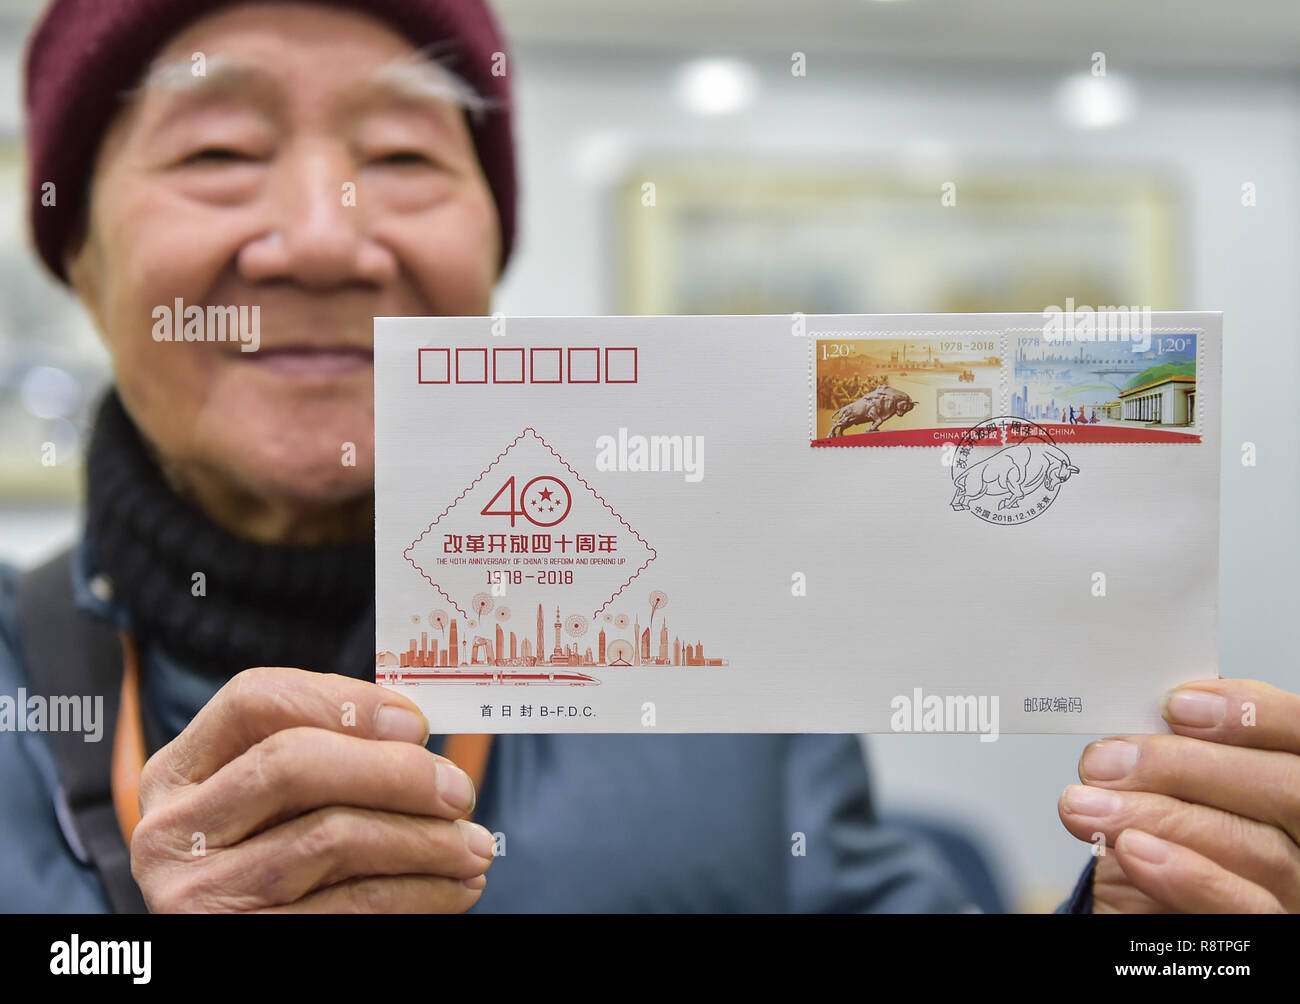 Beijing, China. 18th Dec, 2018. Chang Rongguang, an 82-year-old stamp collector, shows the first day cover with stamps released to mark the 40th anniversary of China's reform and opening up at a post office in Xicheng District of Beijing, capital of China, Dec. 18, 2018. China Post released a set of commemorative stamps and one souvenir sheet marking the 40th anniversary of China's reform and opening up on Tuesday. Credit: Li He/Xinhua/Alamy Live News - Stock Image